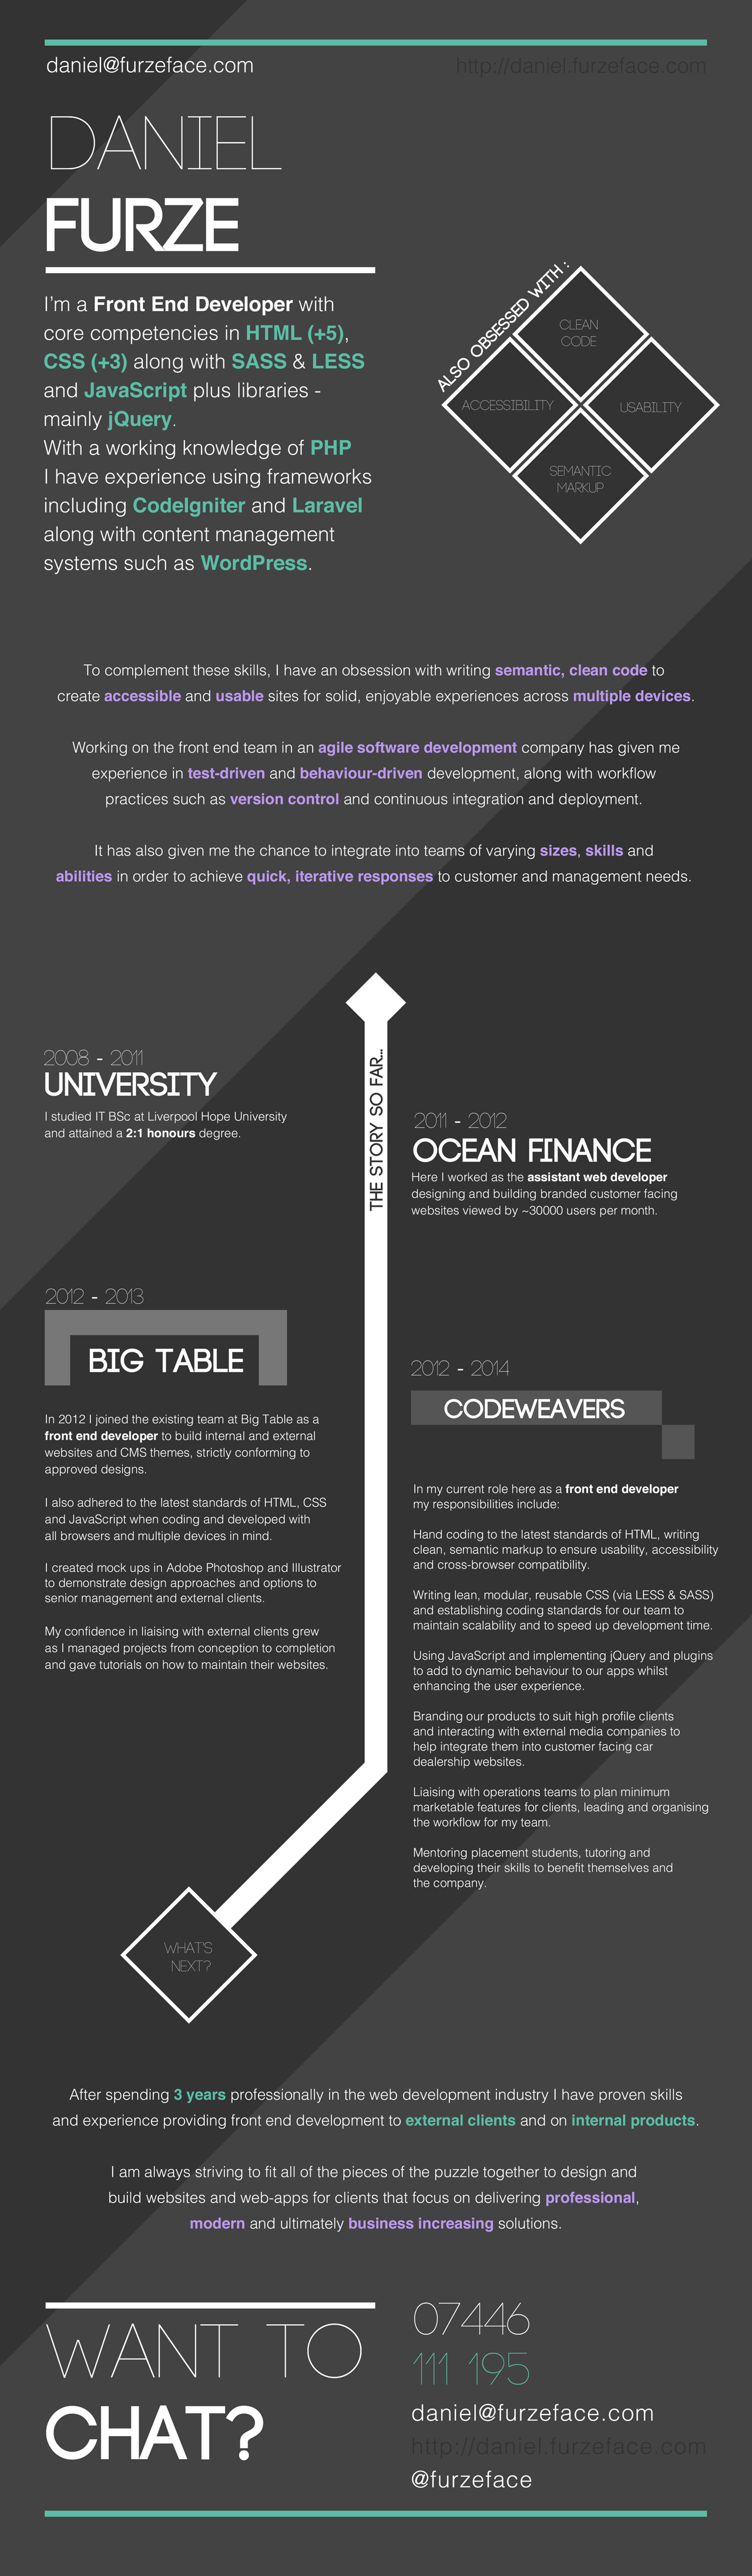 Great Web Developer CV Like the timeline